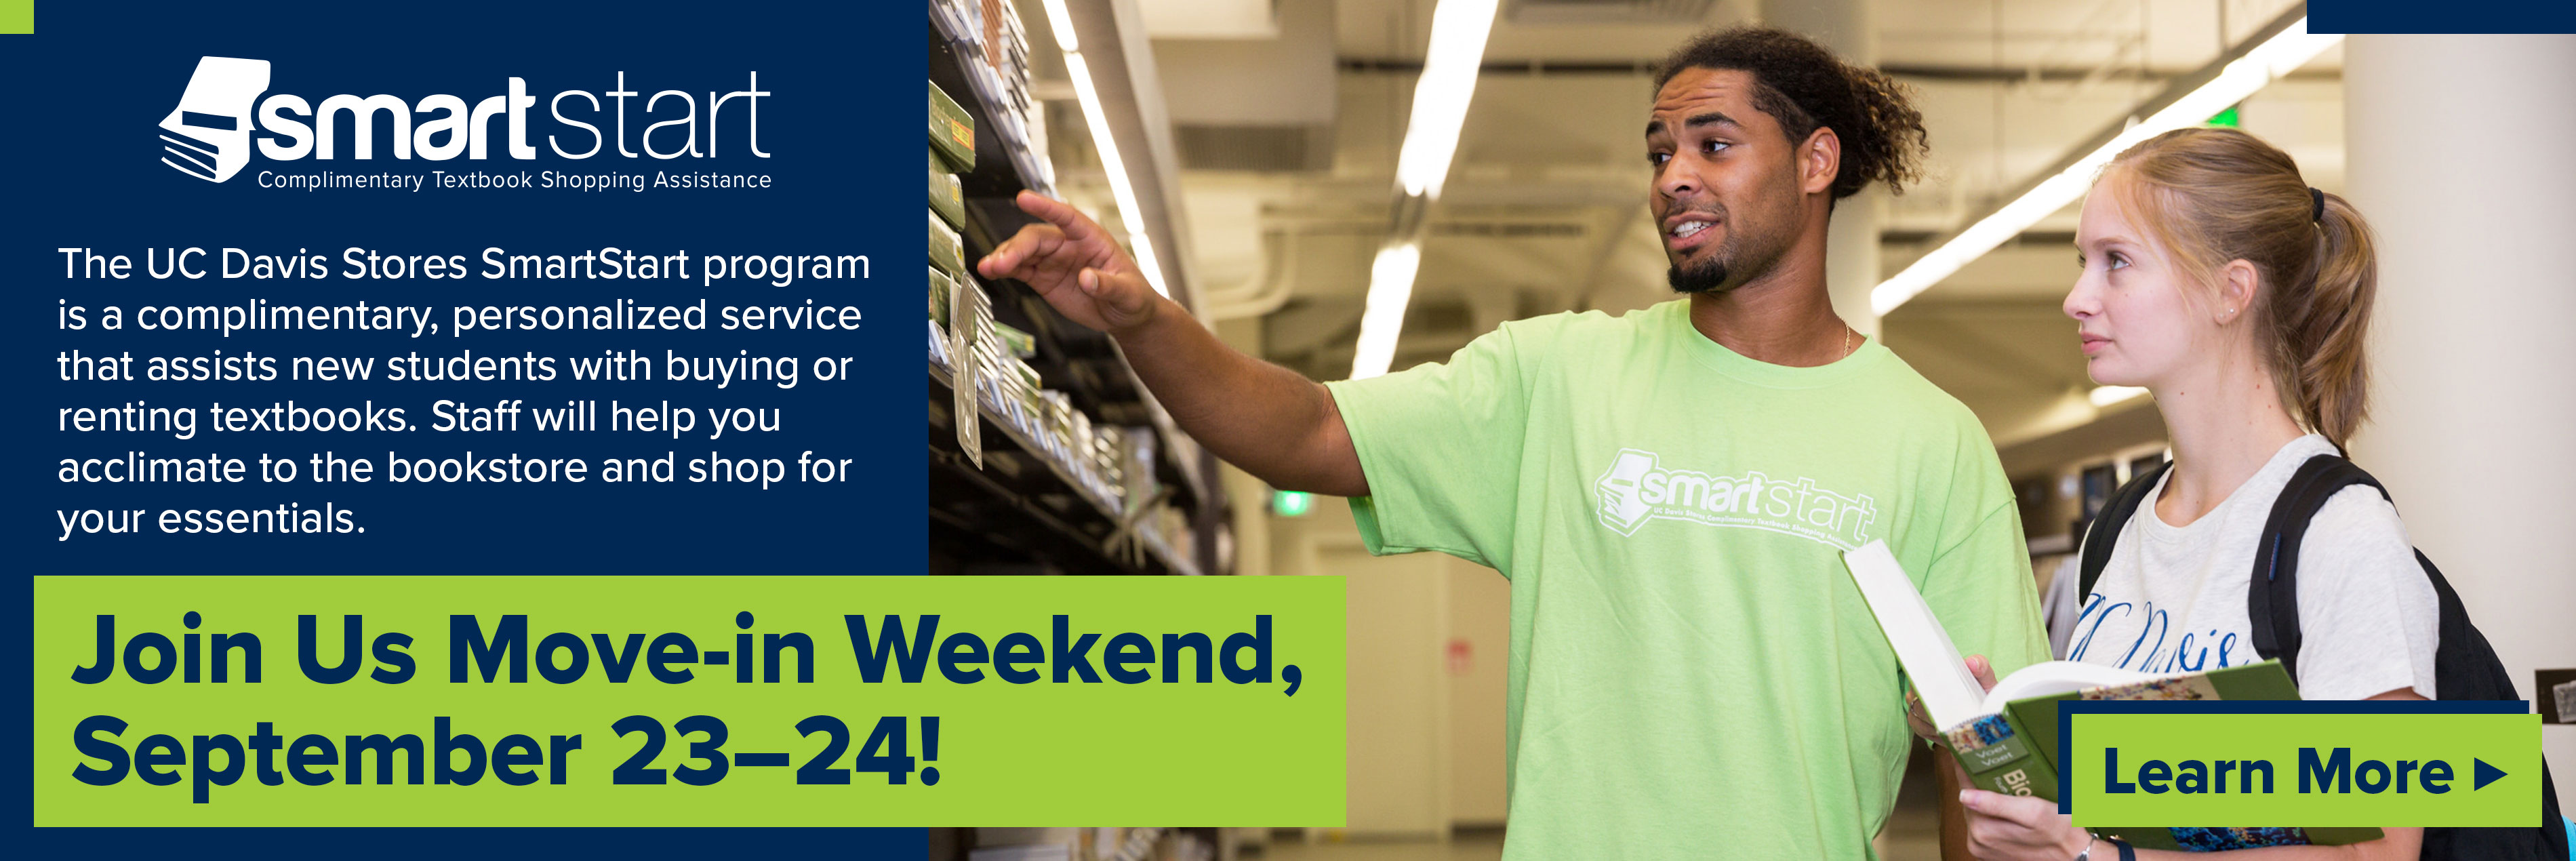 Join the UC Davis Stores for the shopping event of the year, SmartStart! September 23–24